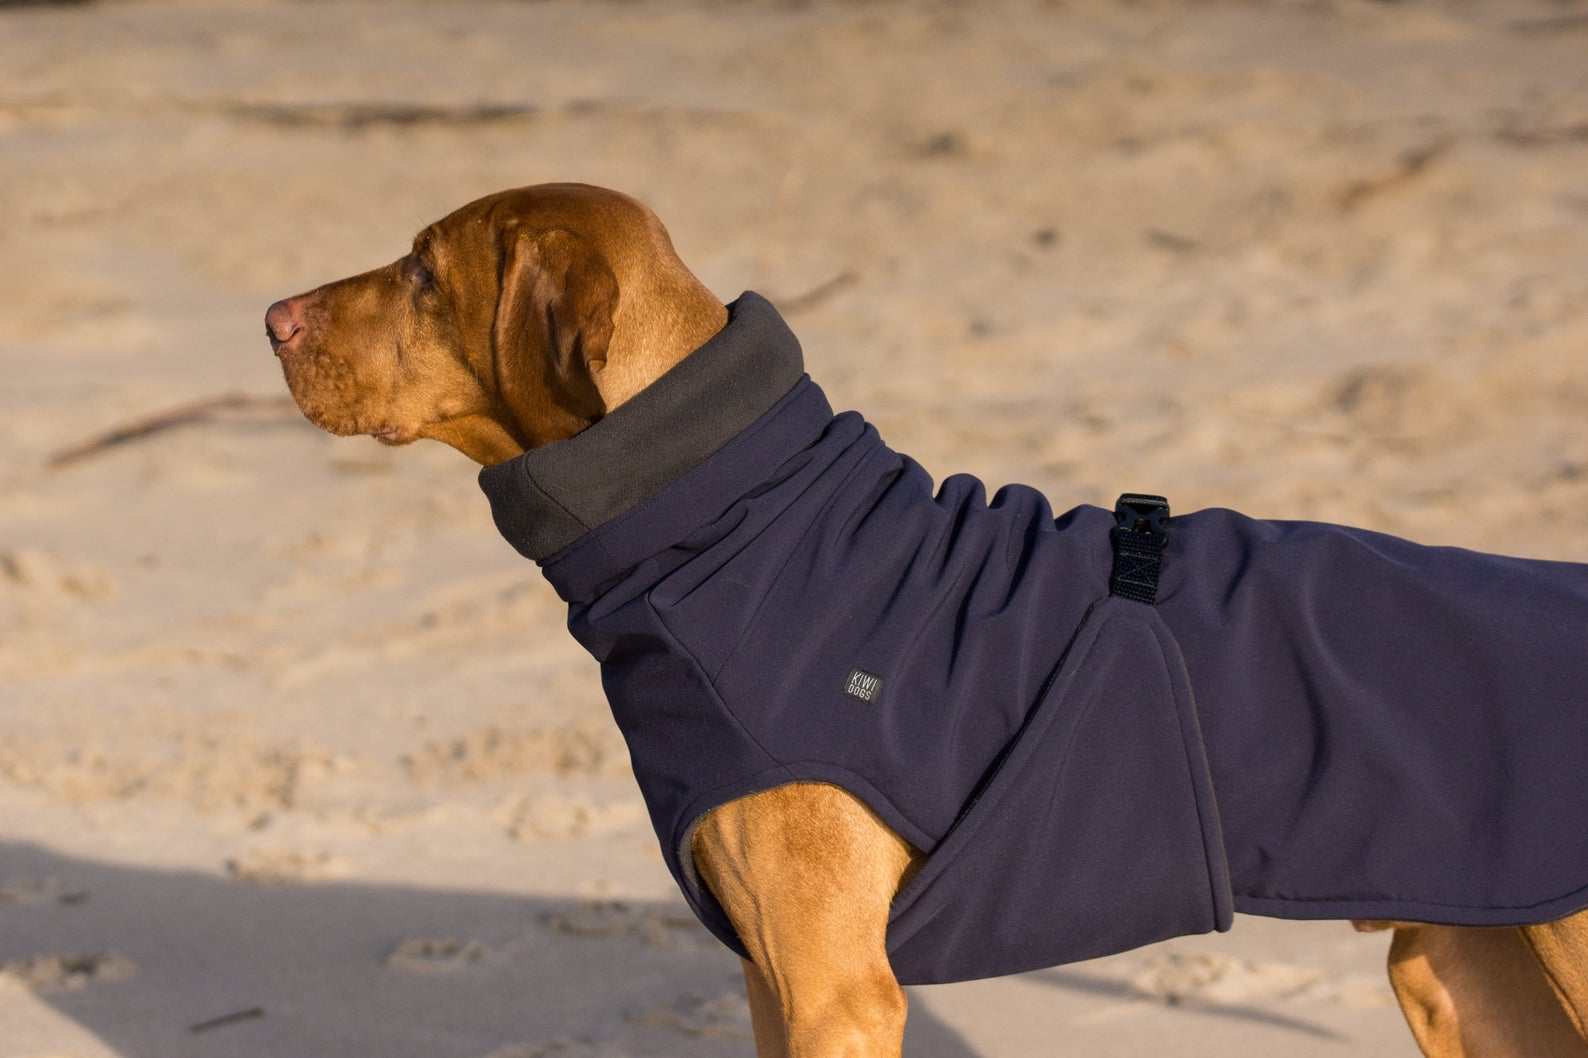 KiwiDogs Waterproof and Windproof Soft Shell Raincoat via Etsy.